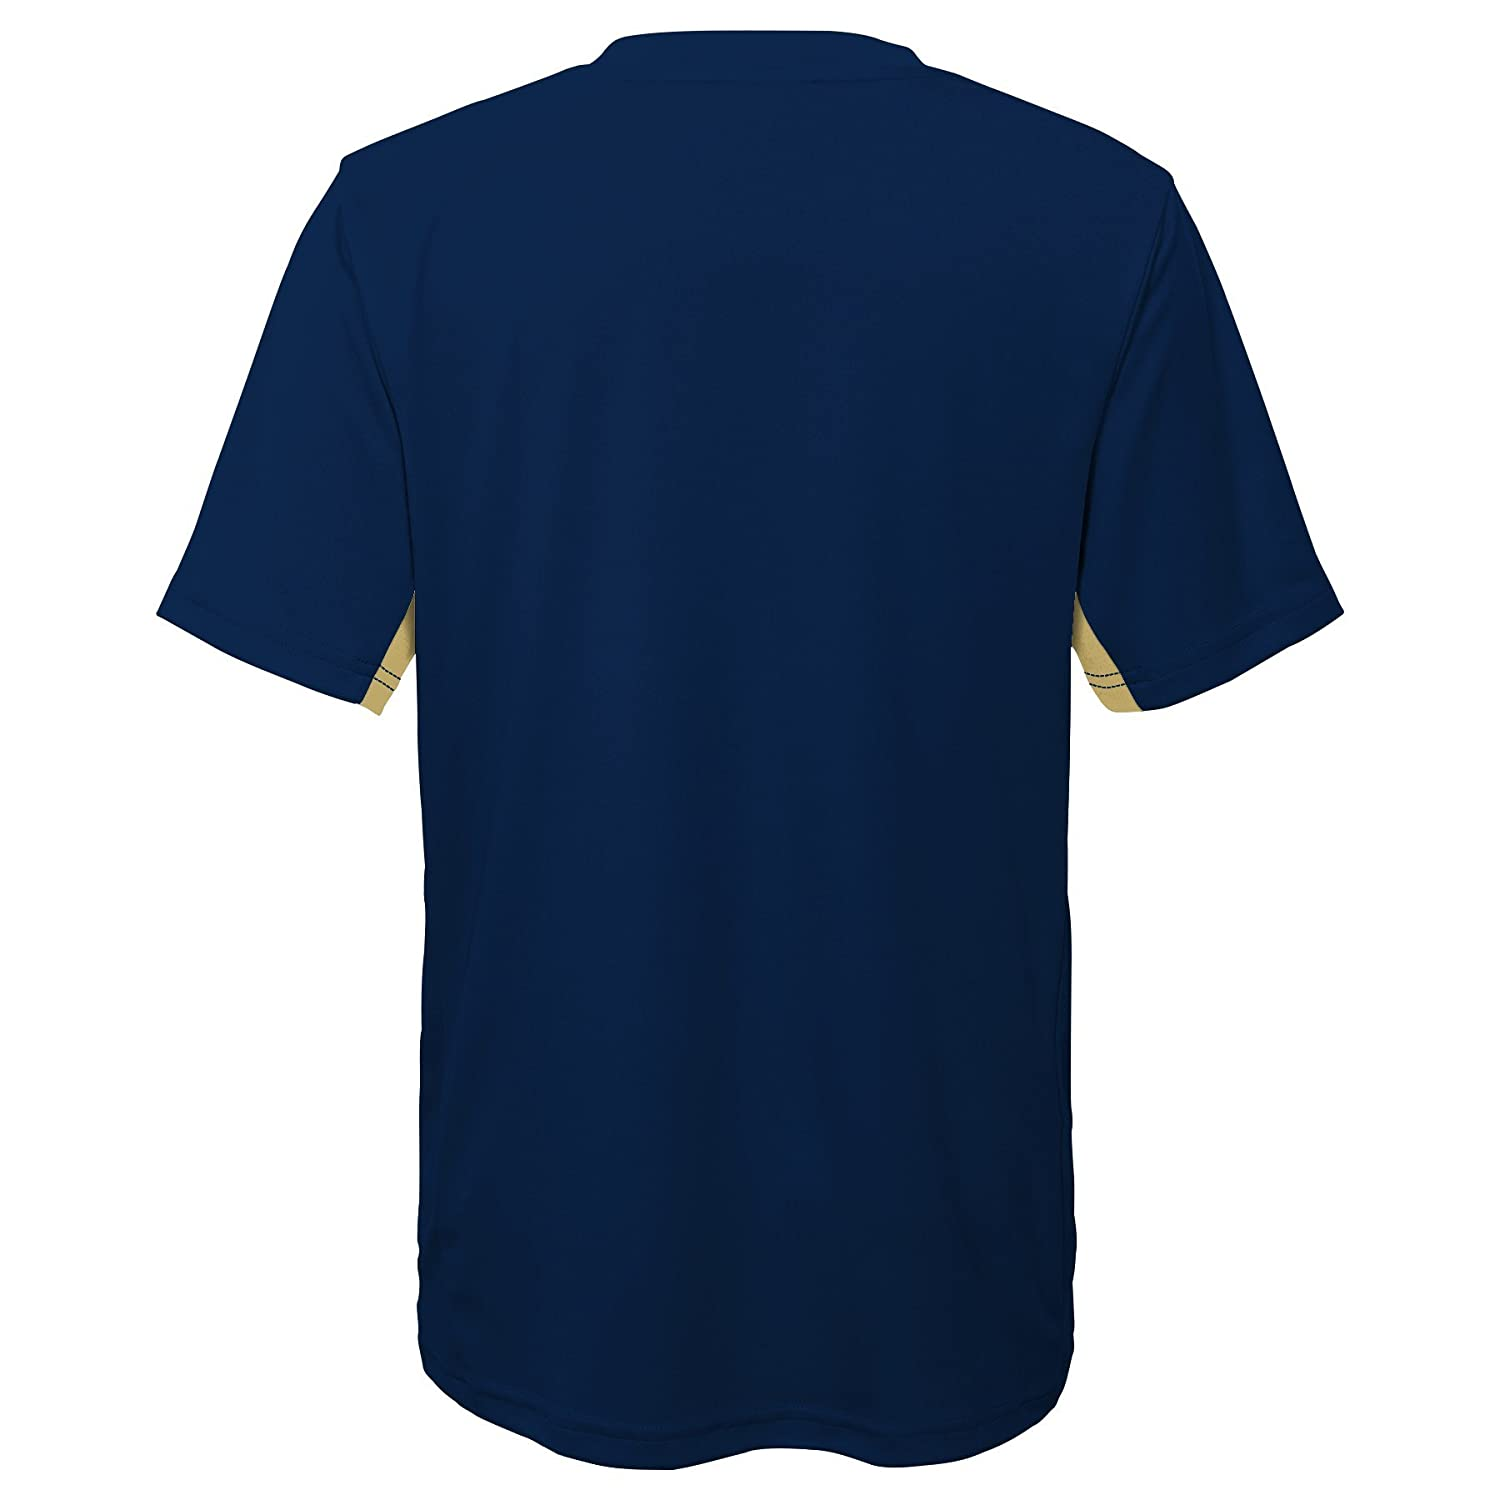 Dark Navy 10-12 NCAA by Outerstuff NCAA Pittsburgh Panthers Youth Boys Mainframe: Short Sleeve Performance Top Youth Medium